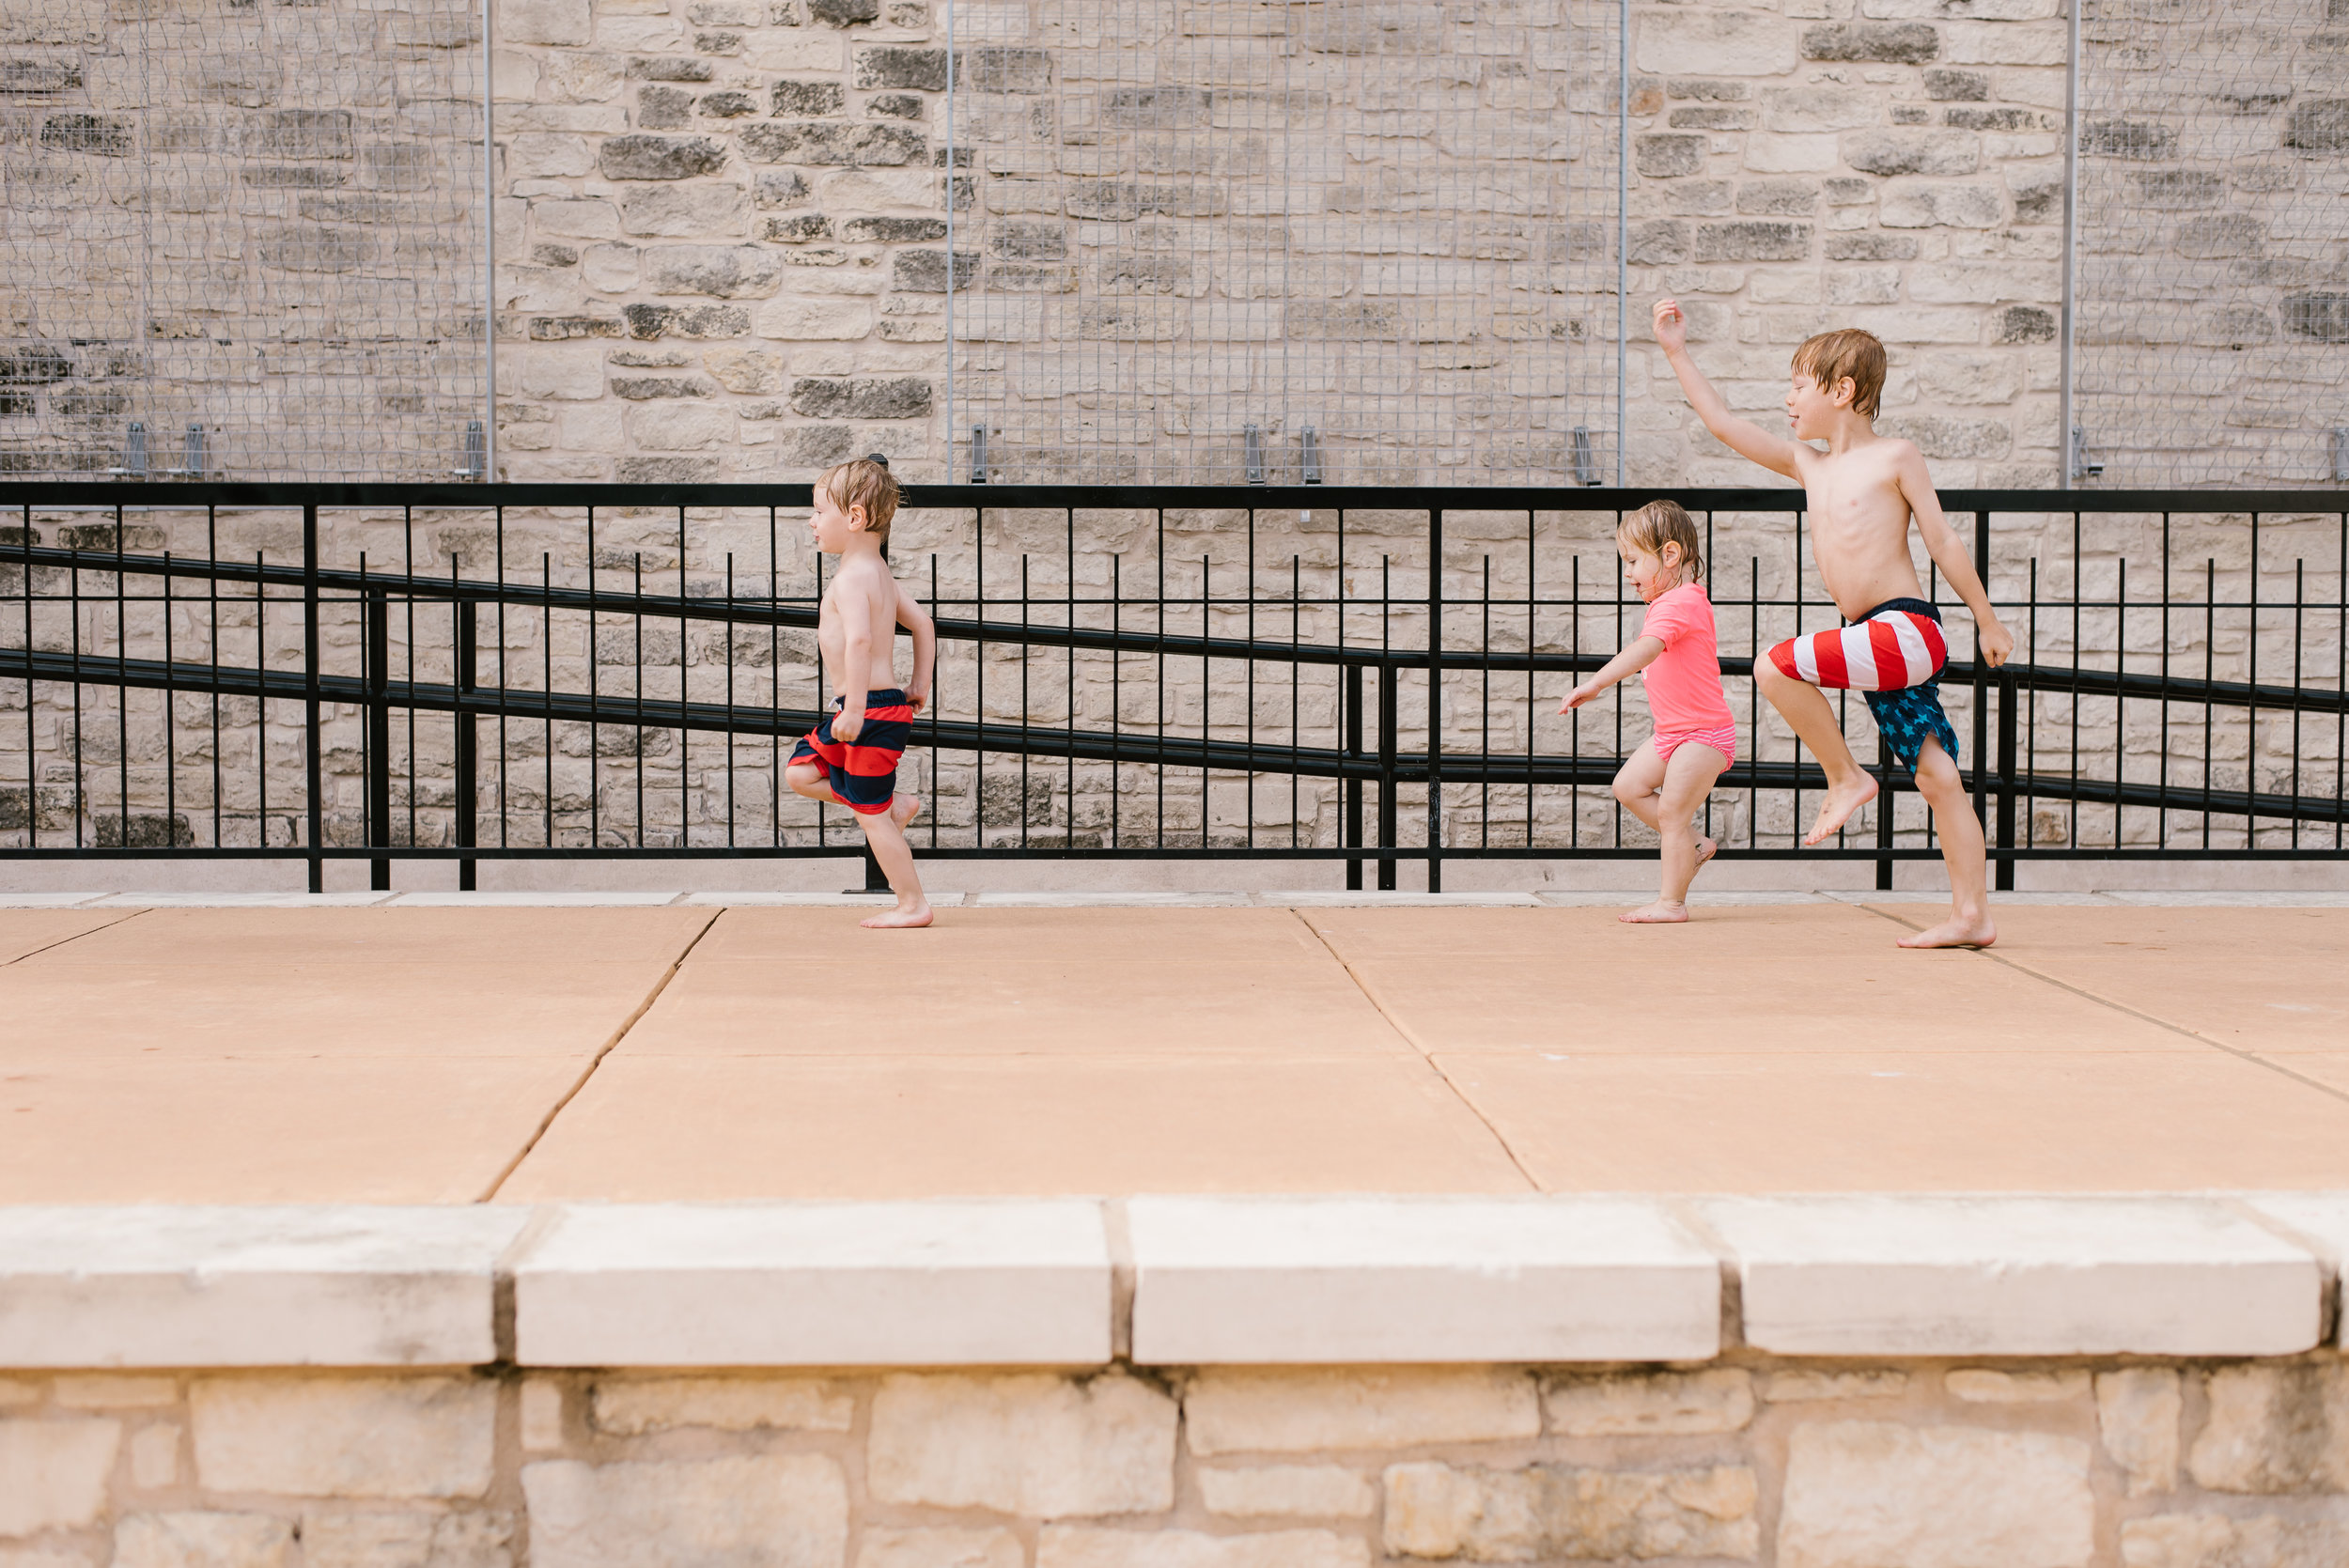 Commerical Lifestyle Photography_Emily Ingalls Photography_Round Rock Texas_Austin Commerical Lifestyle Photographer-23.jpg